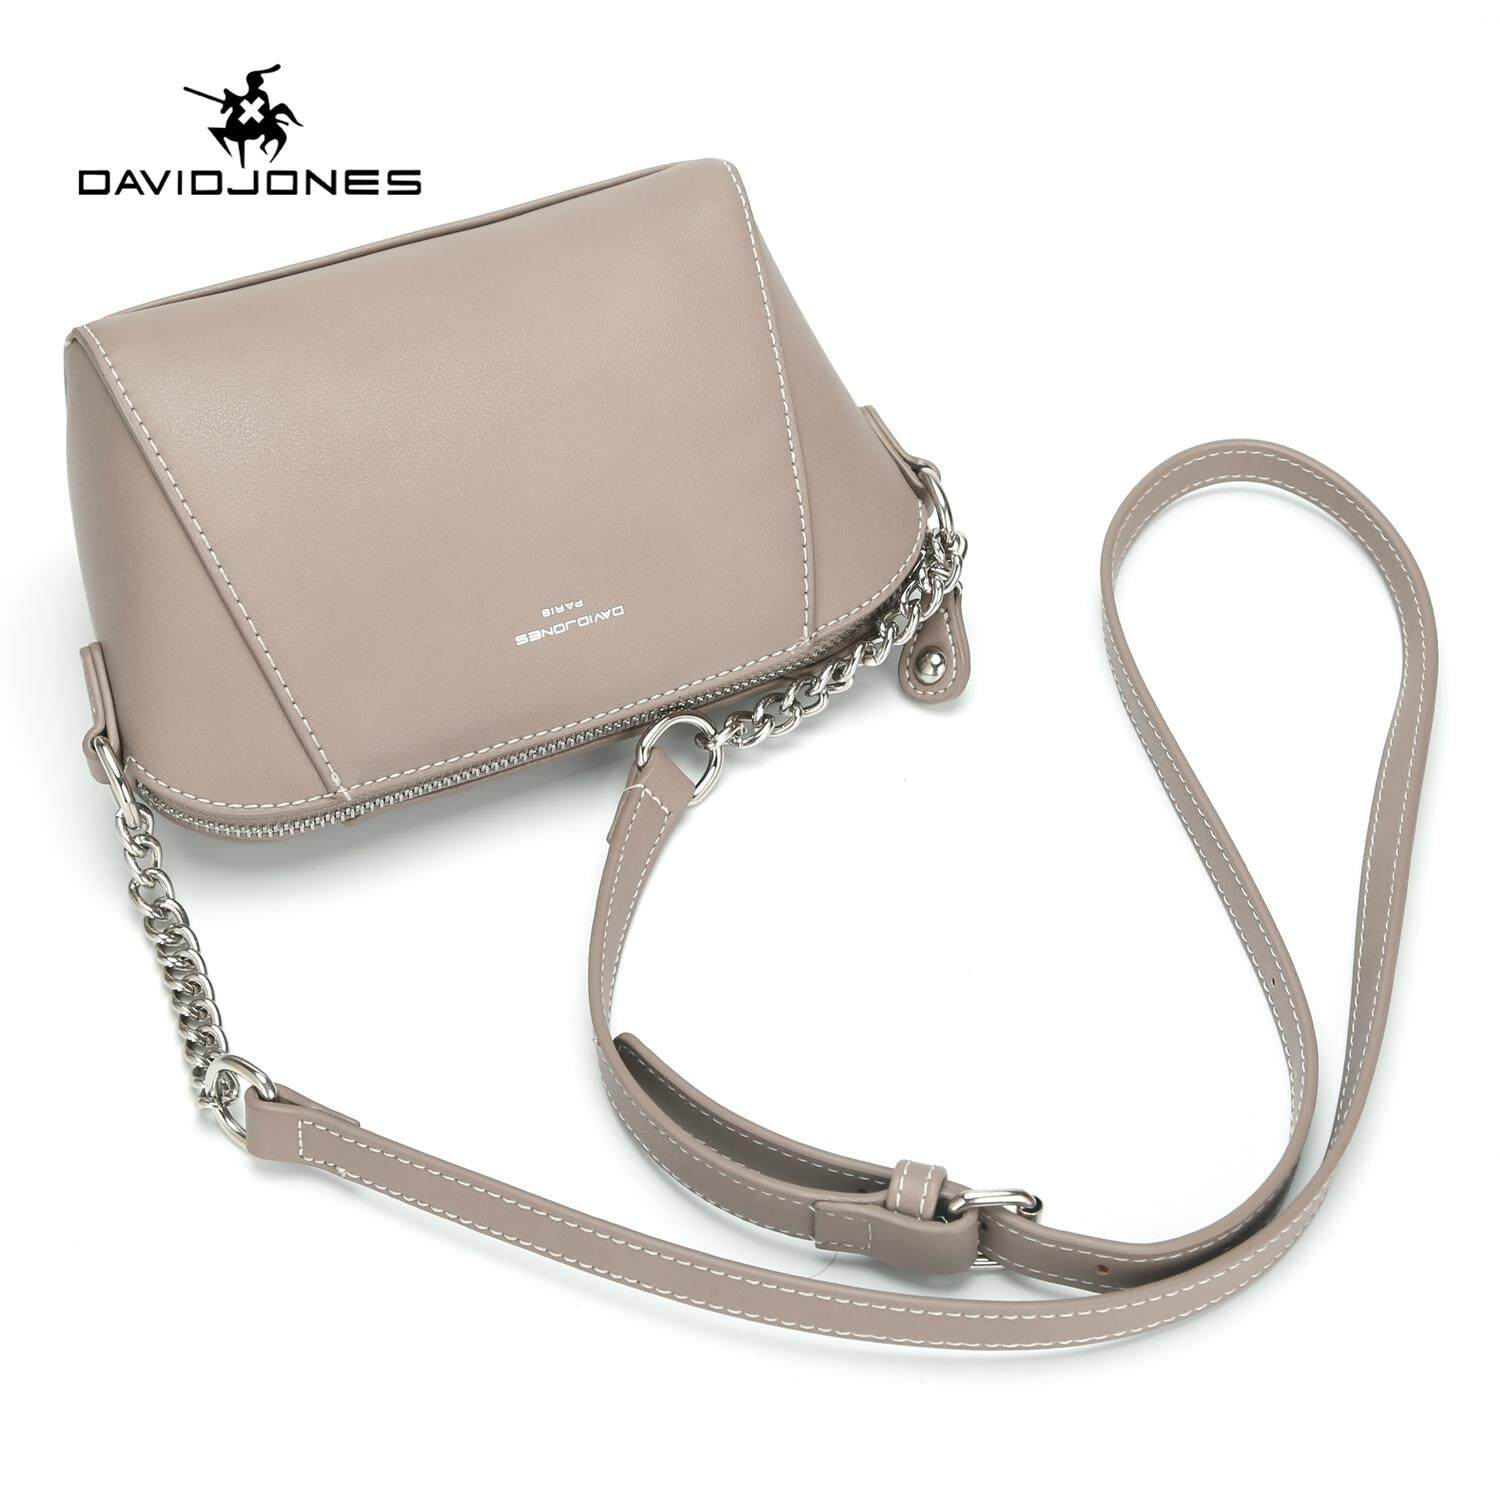 89dfc65c76d DAVIDJONES women handbag pu leather female crossbody bag small spring chain  lady shoulder bag girl summer brand messenger bag free shipping